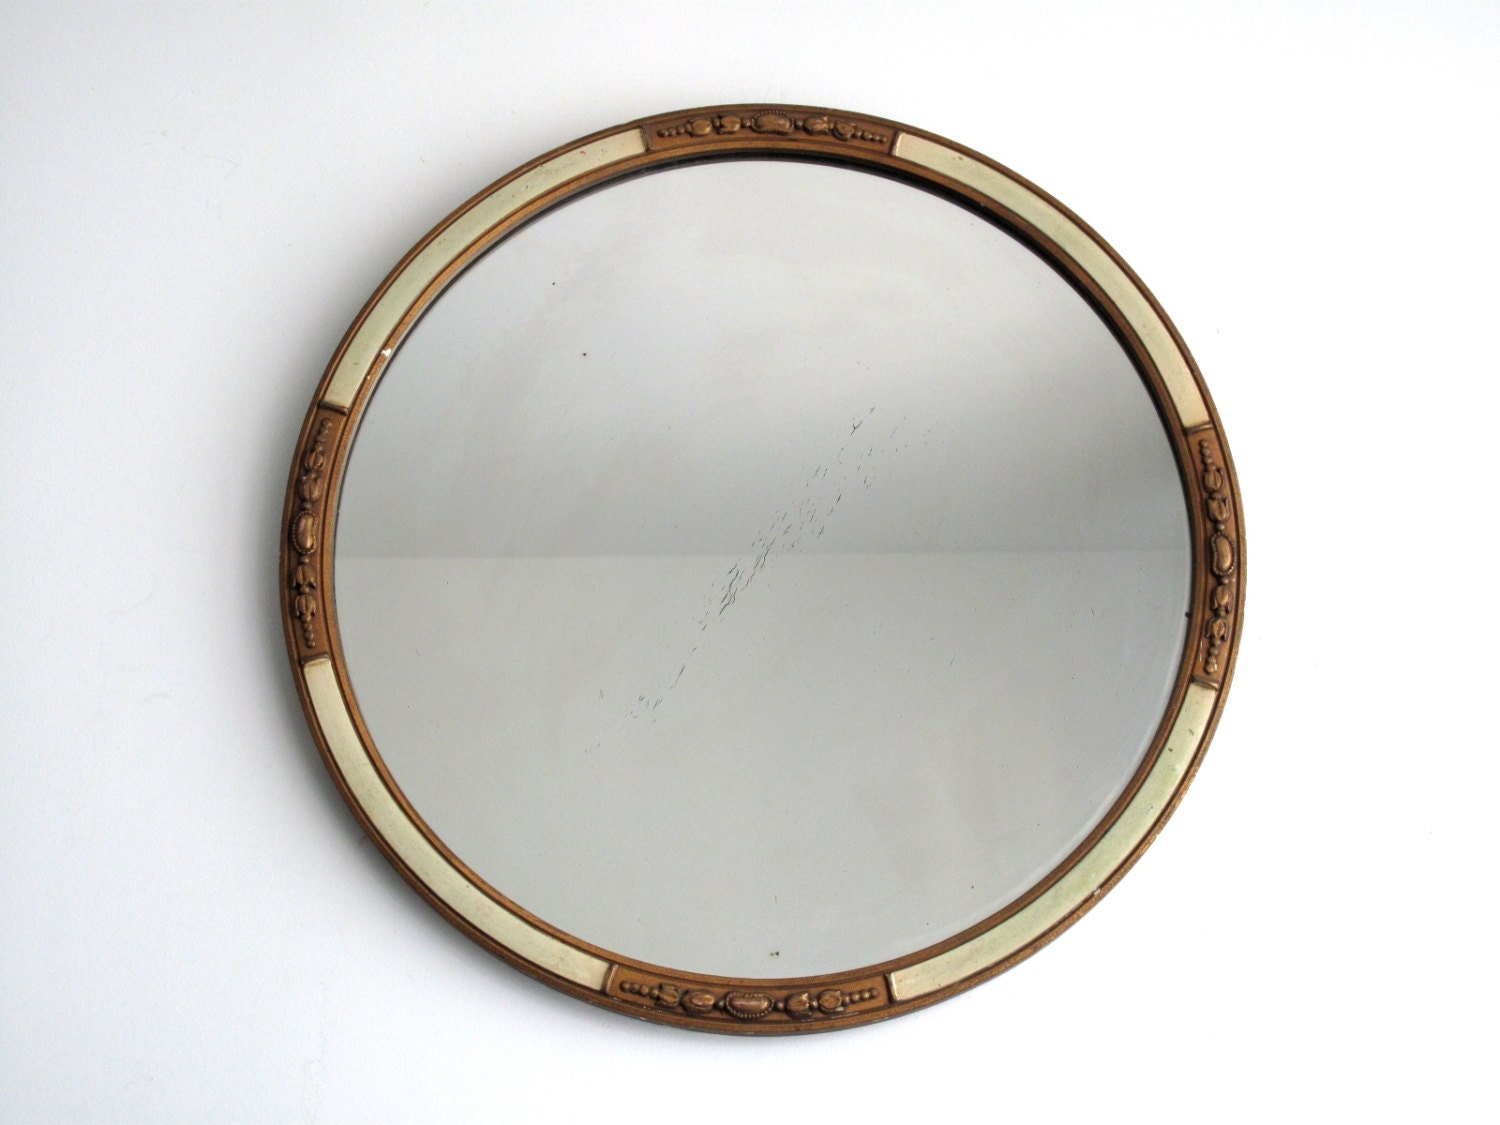 Gold Round Wall Mirror Wood Framed Hanging By Snapshotvintage